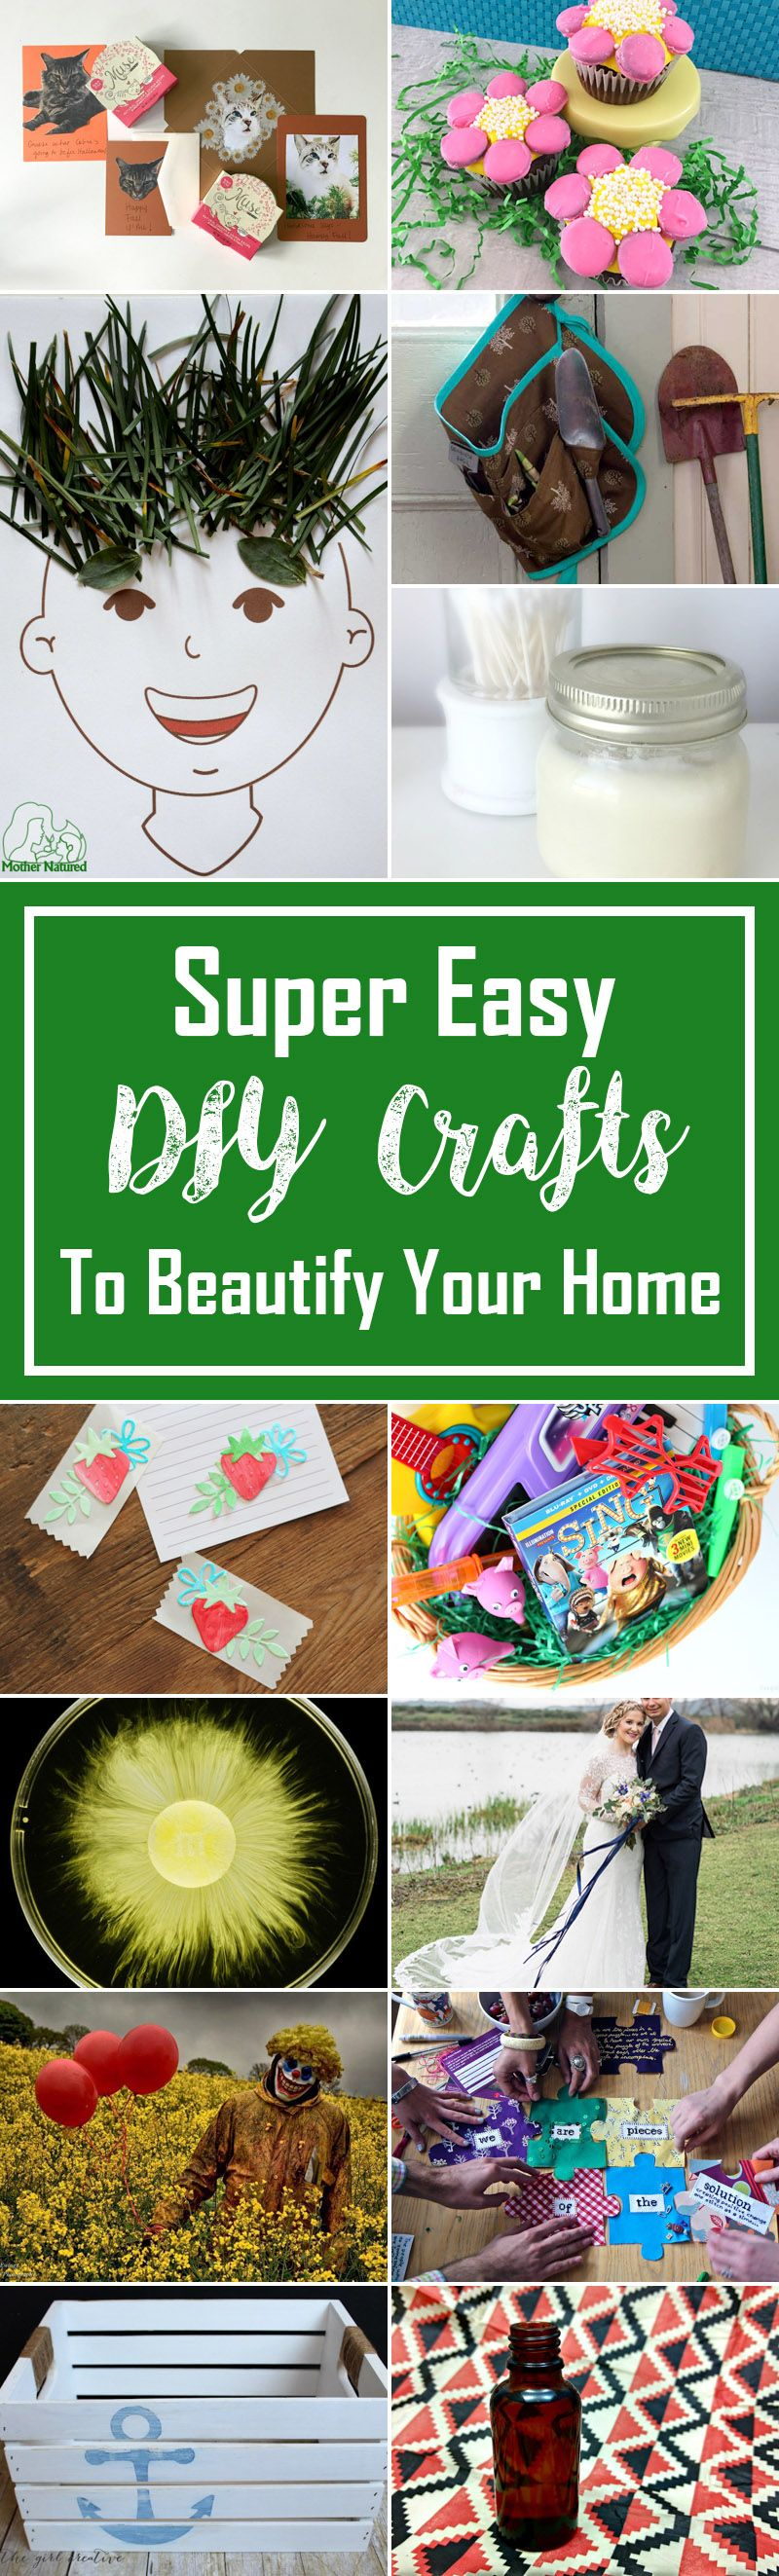 40 Super Easy Diy Crafts To Beautify Your Home